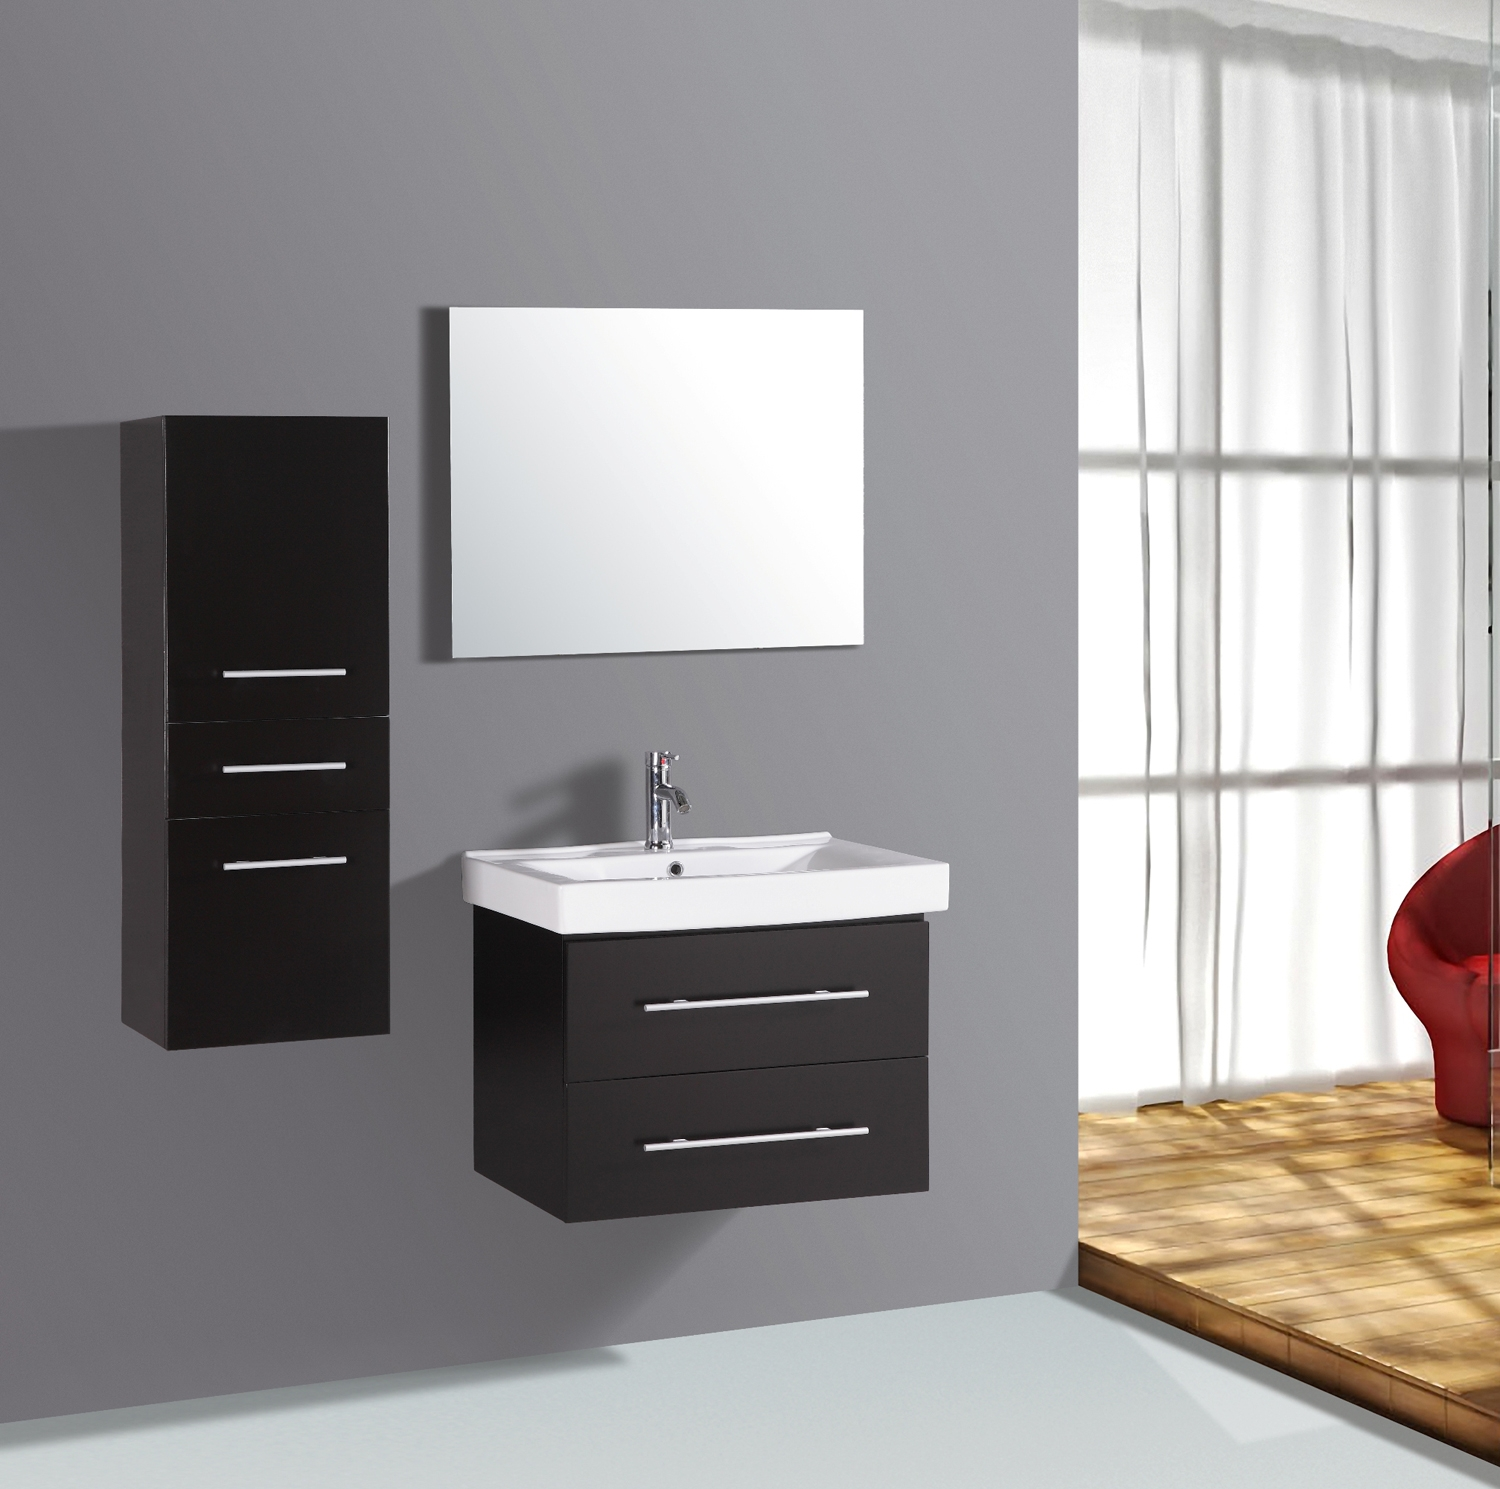 Contemporary Bathroom Wall Mounted Cabinets